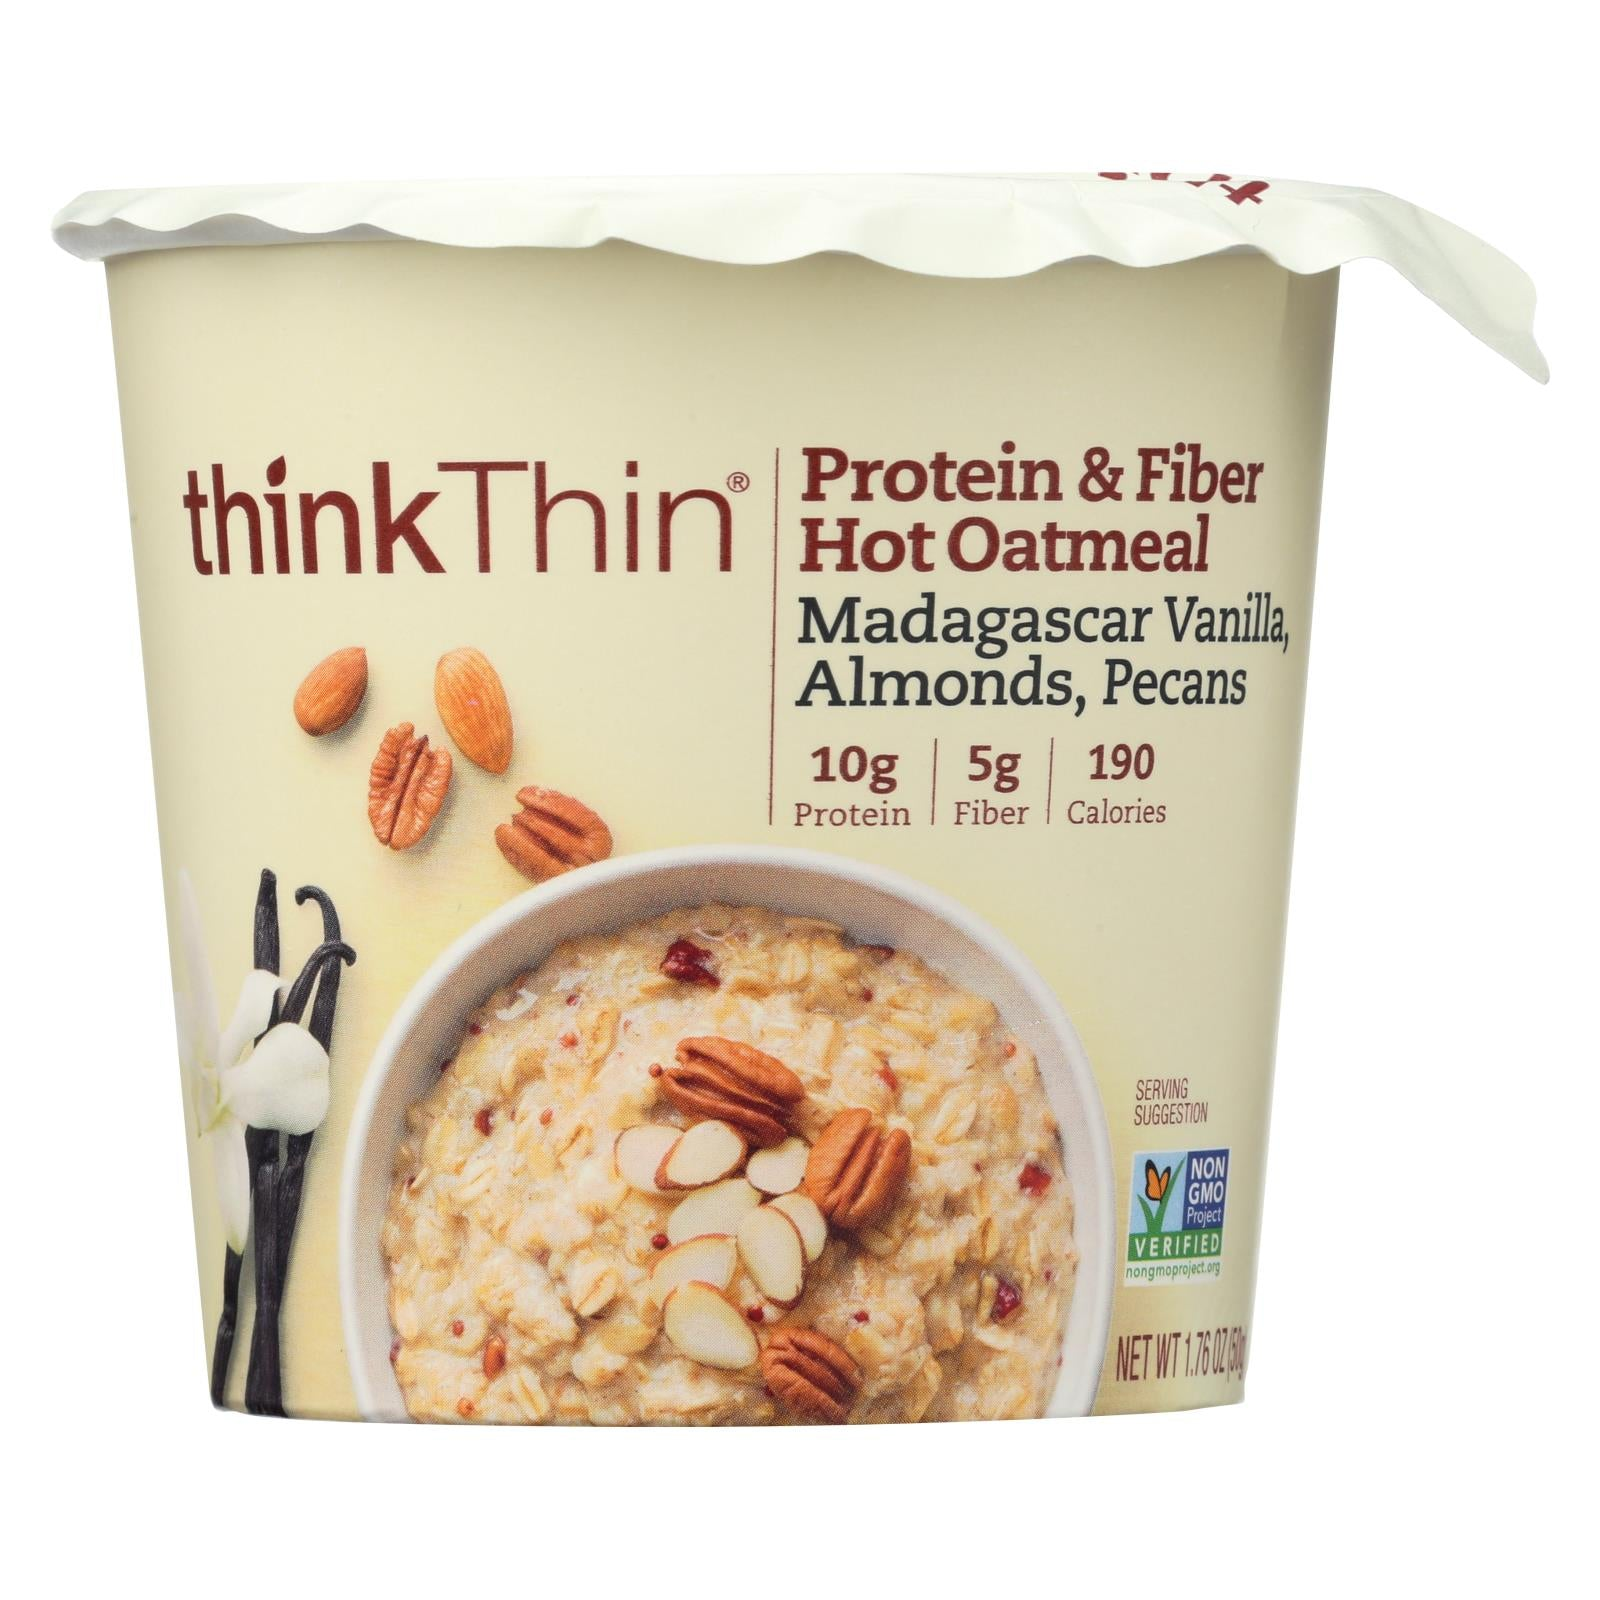 Buy Think! Thin Protein & Fiber Hot Oatmeal -Vanilla - Almonds - Pecan - Case of 6 - 1.76 oz - Hot Cereal from Veroeco.com